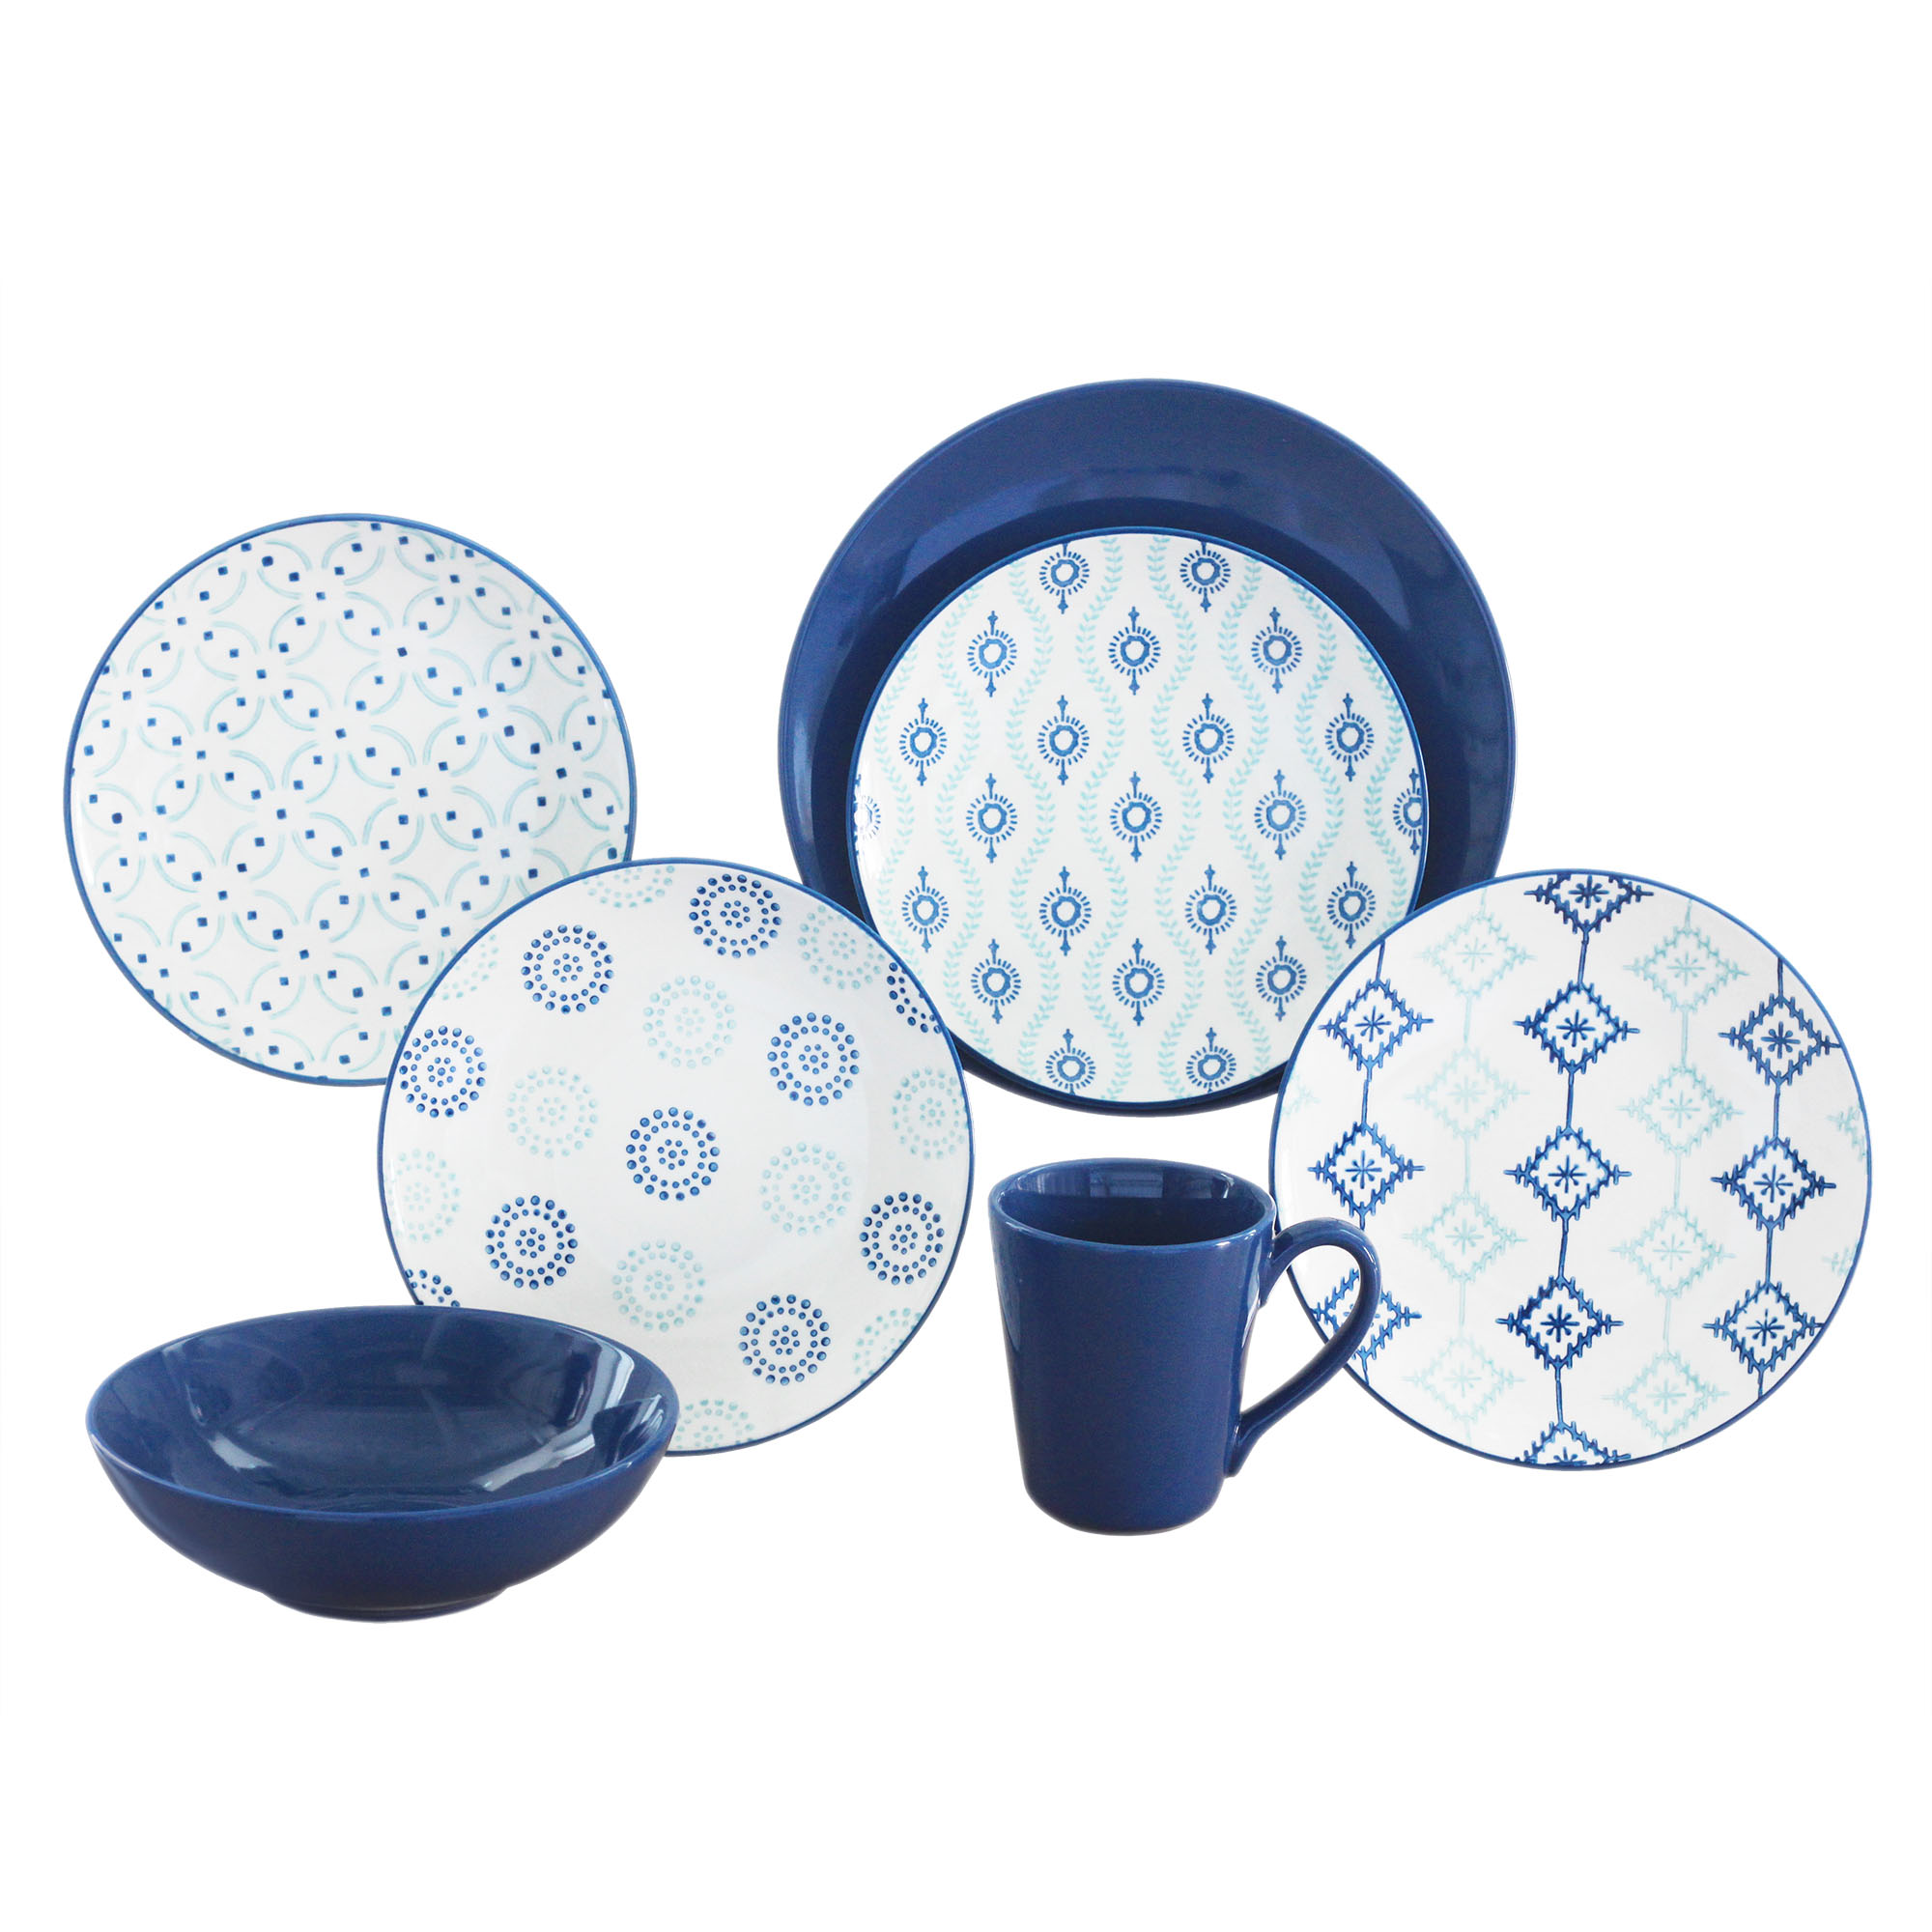 Patterned Dinnerware Sets Amazing Design